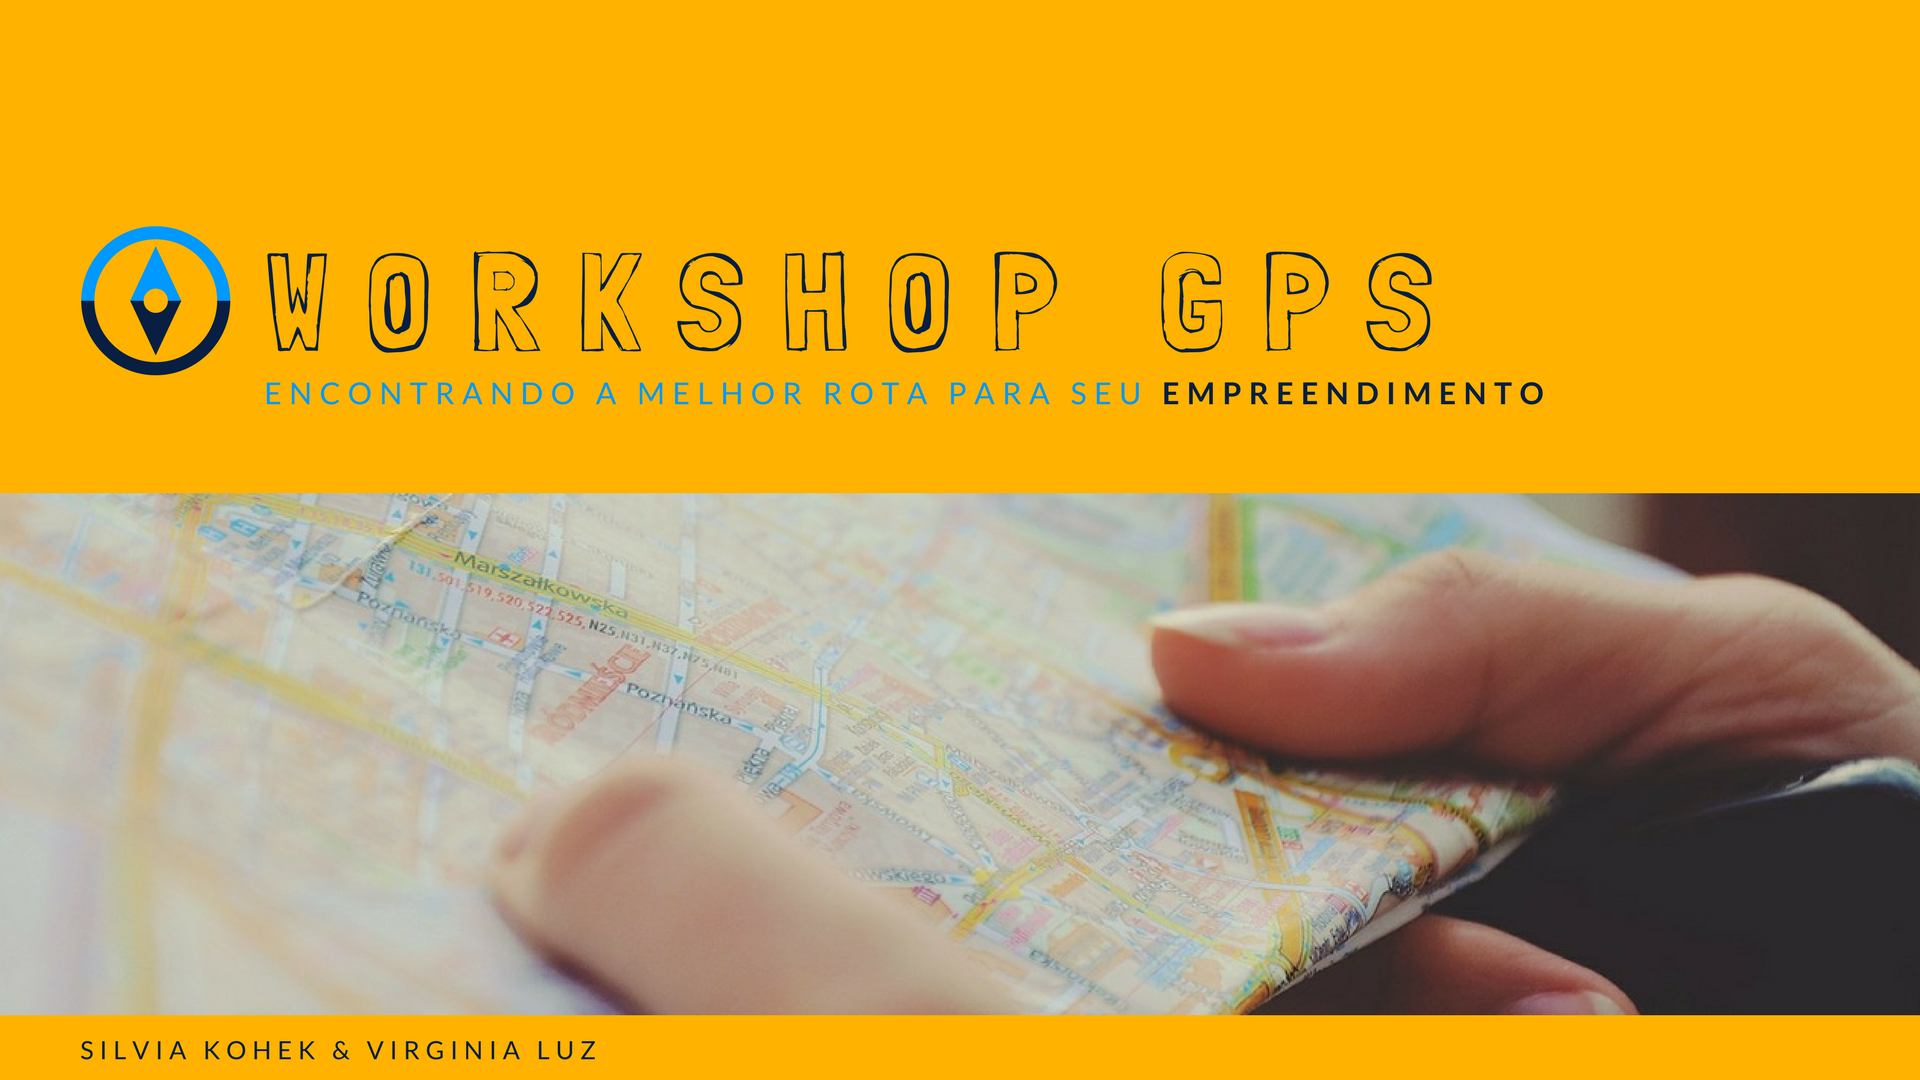 Workshop GPS